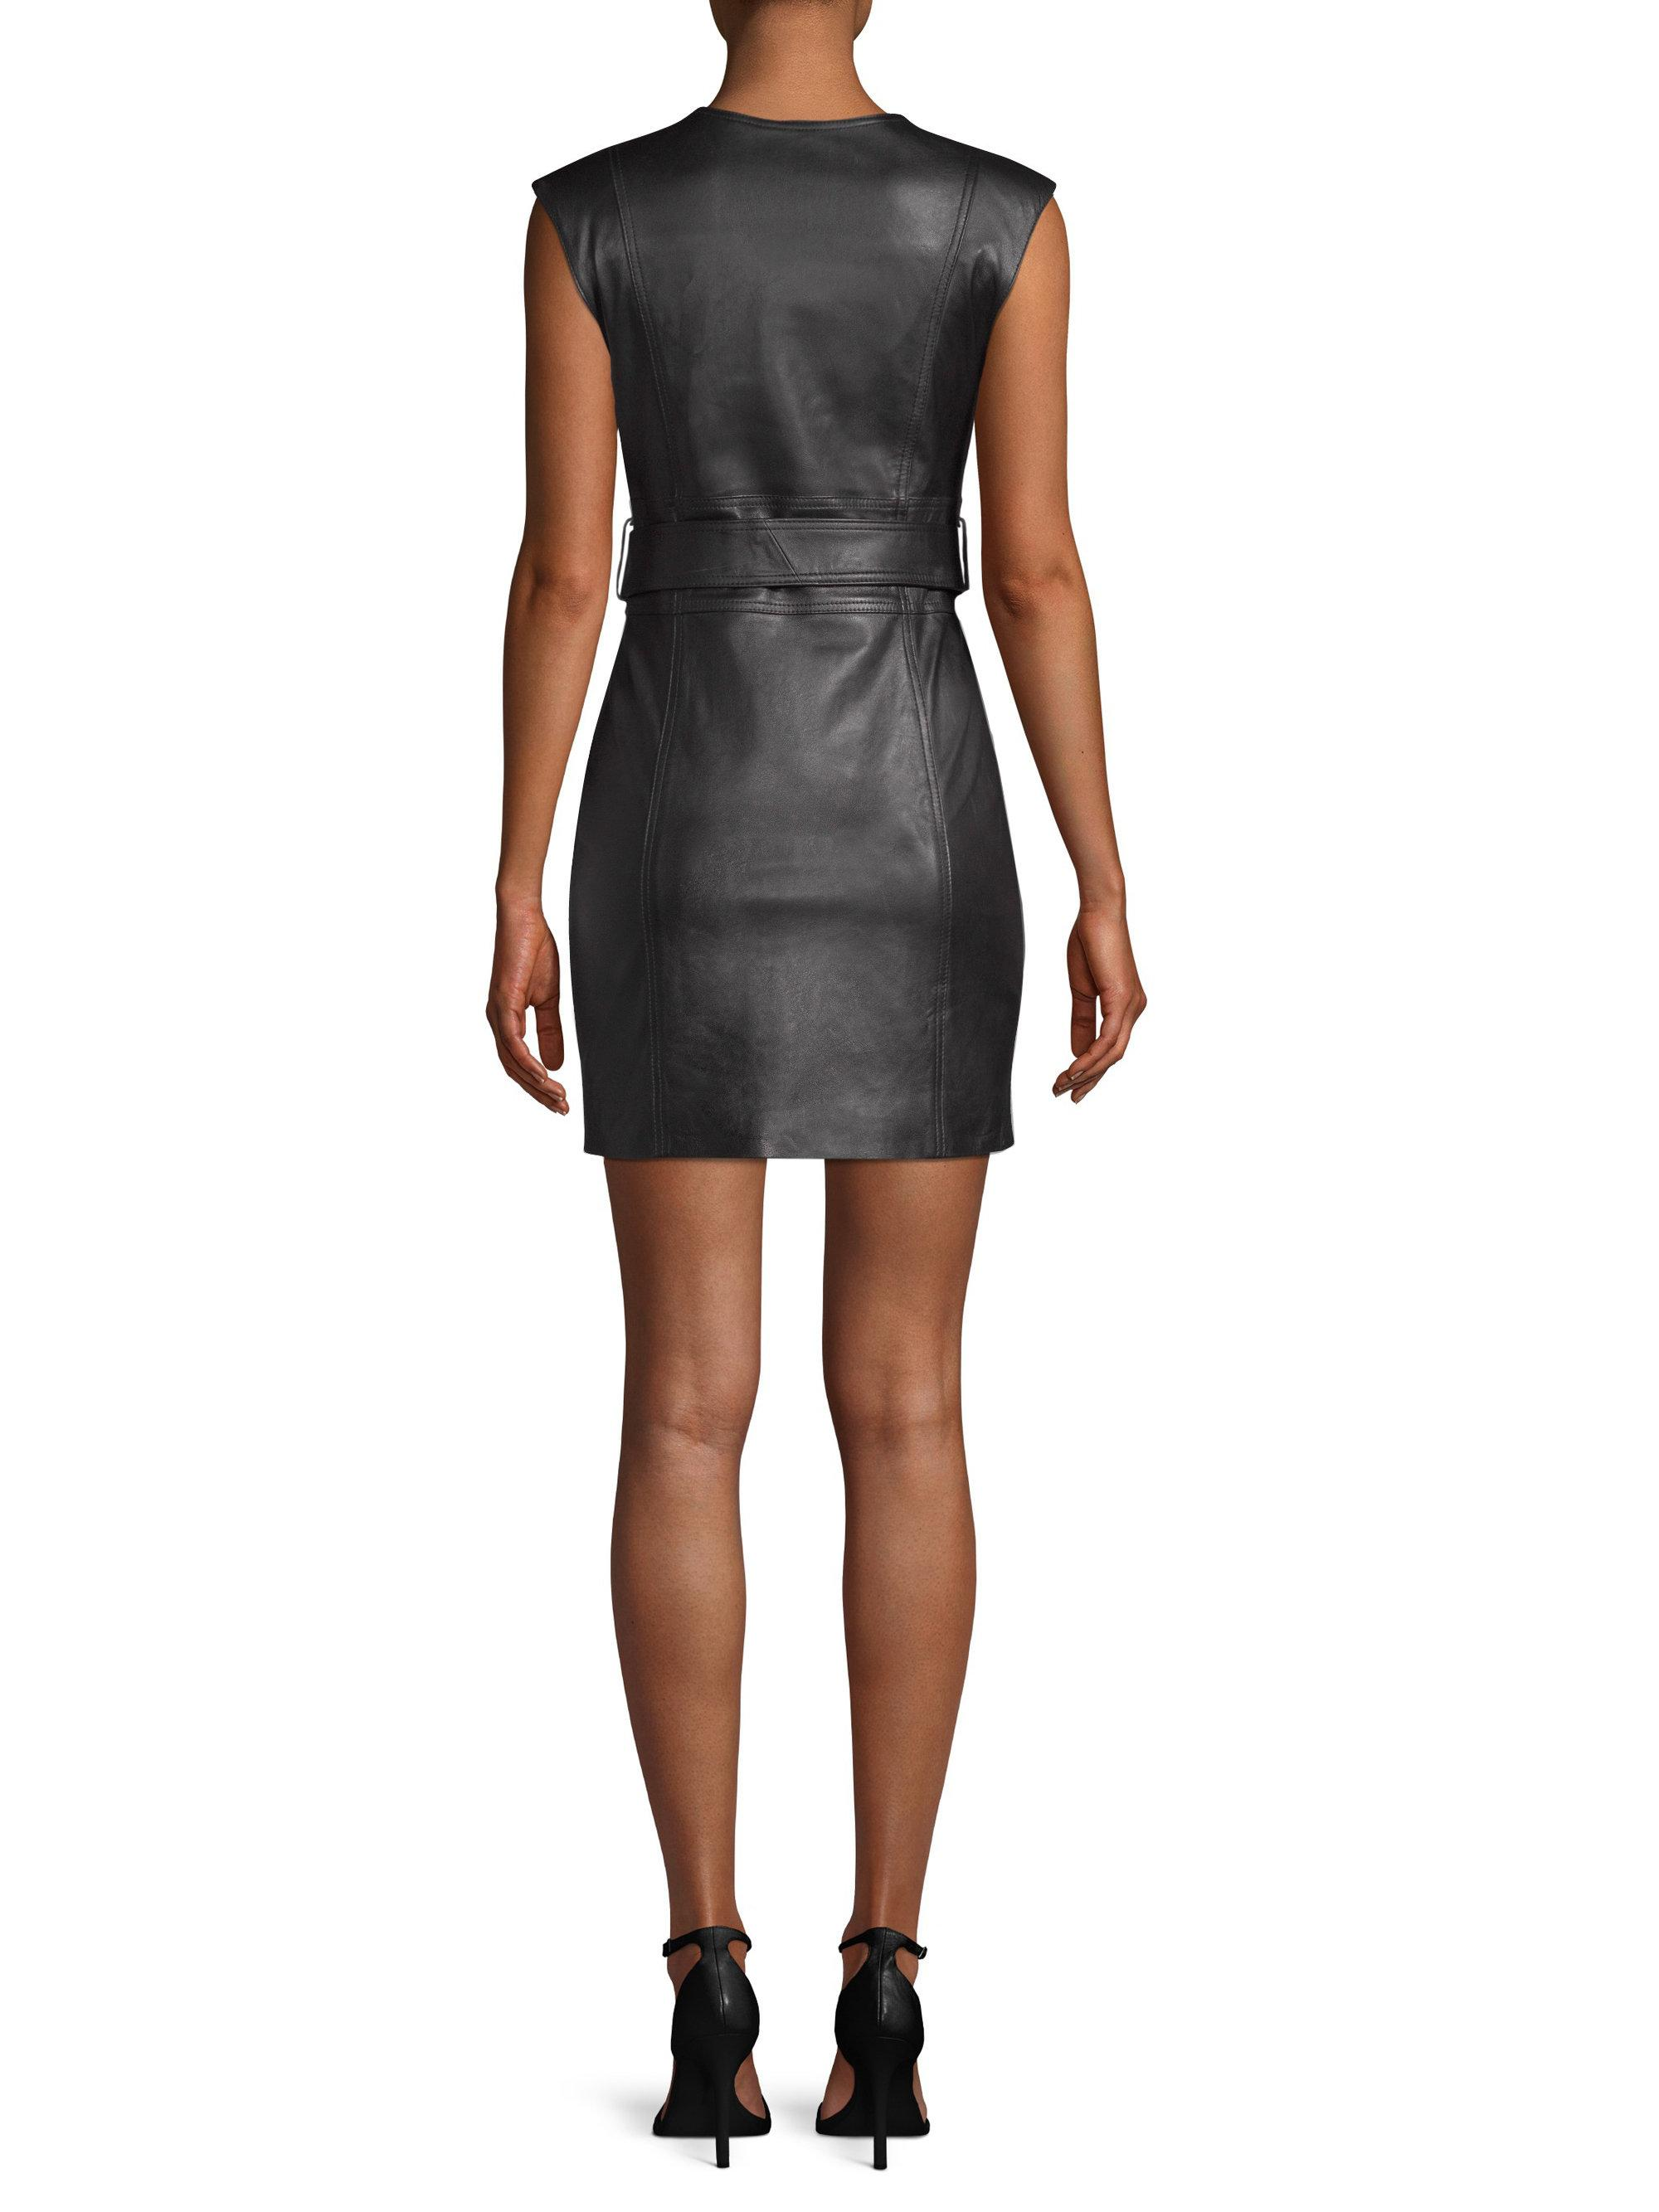 Lyst - Misha Collection Loren Leather Moto Dress in Black